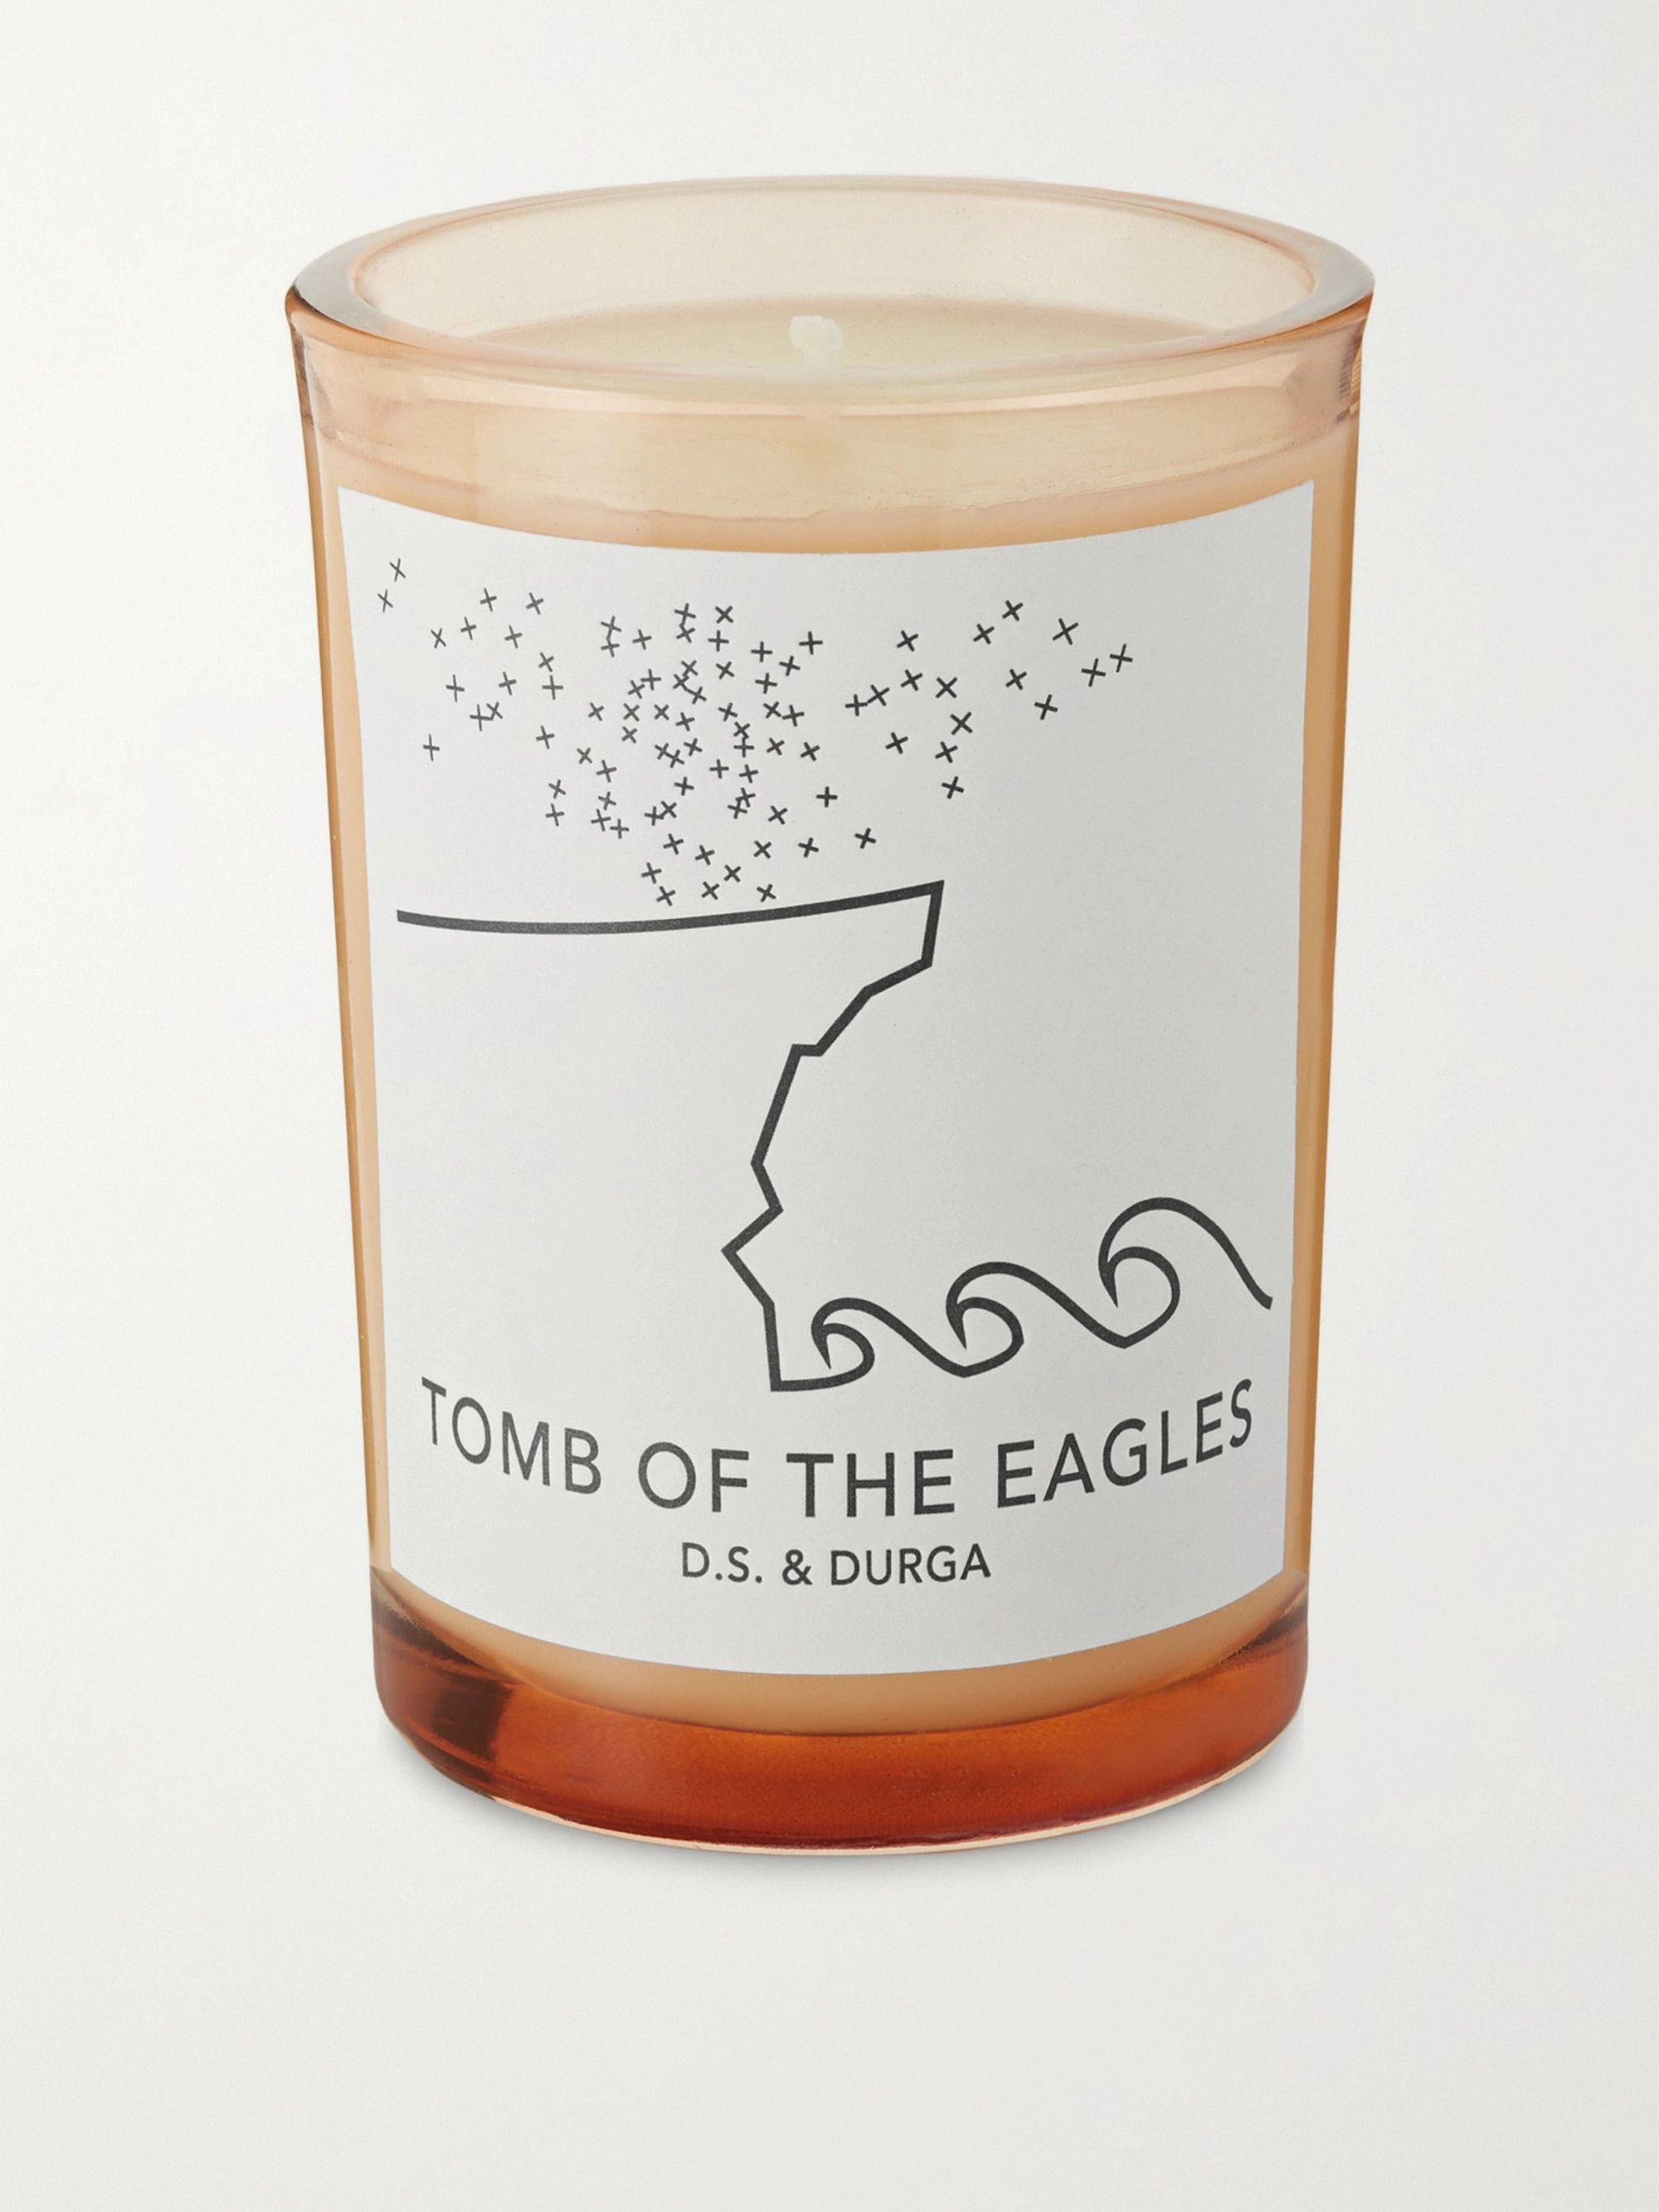 D.S. & Durga Tomb of the Eagles Scented Candle, 200g